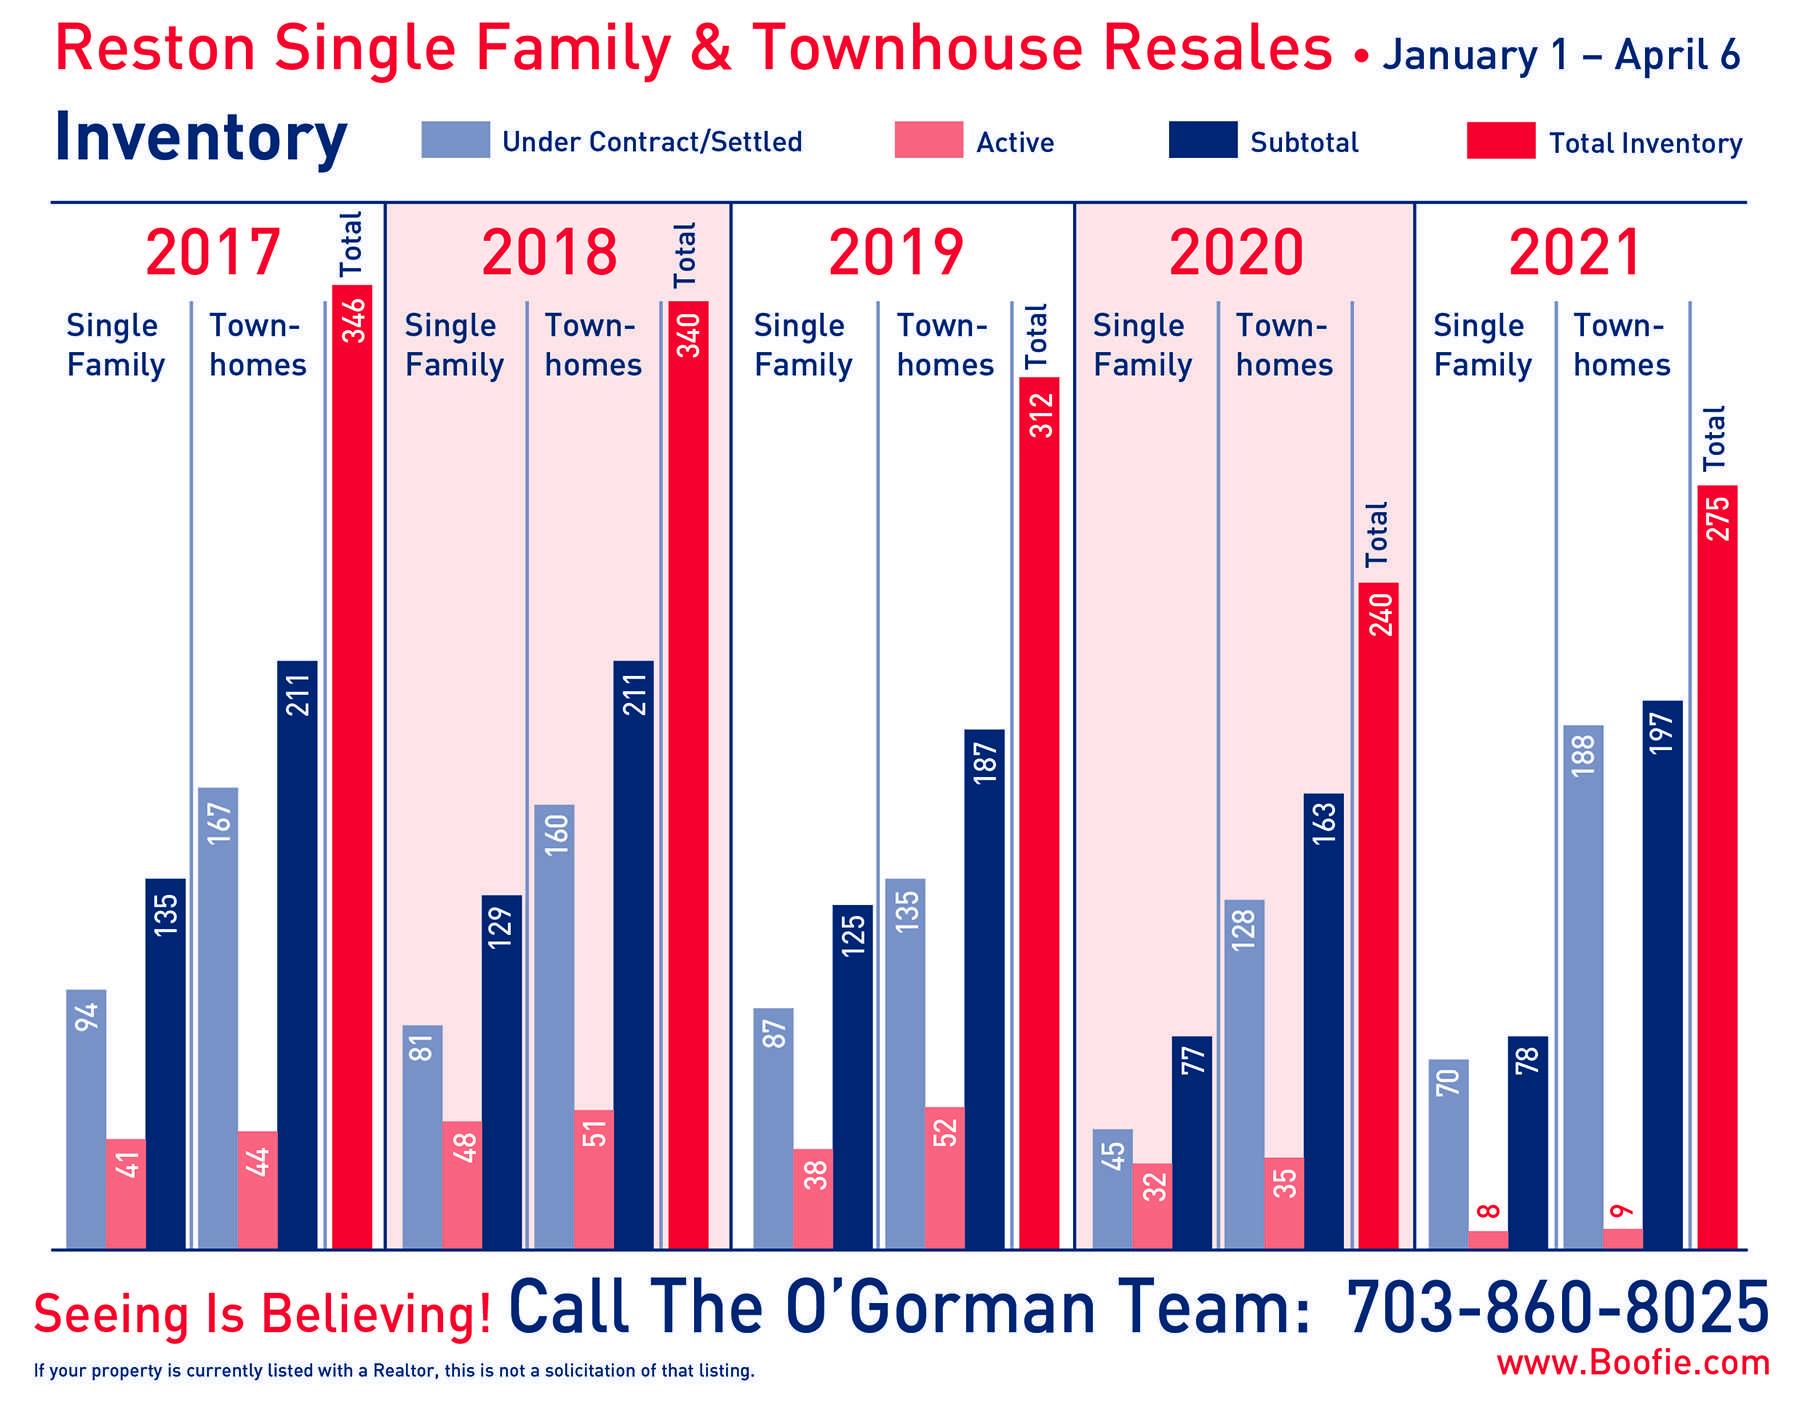 Single-family homes and townhomes that were for sale in Reston in the first quarter (January 1 – April 6) for the last five years (2017 – 2021)